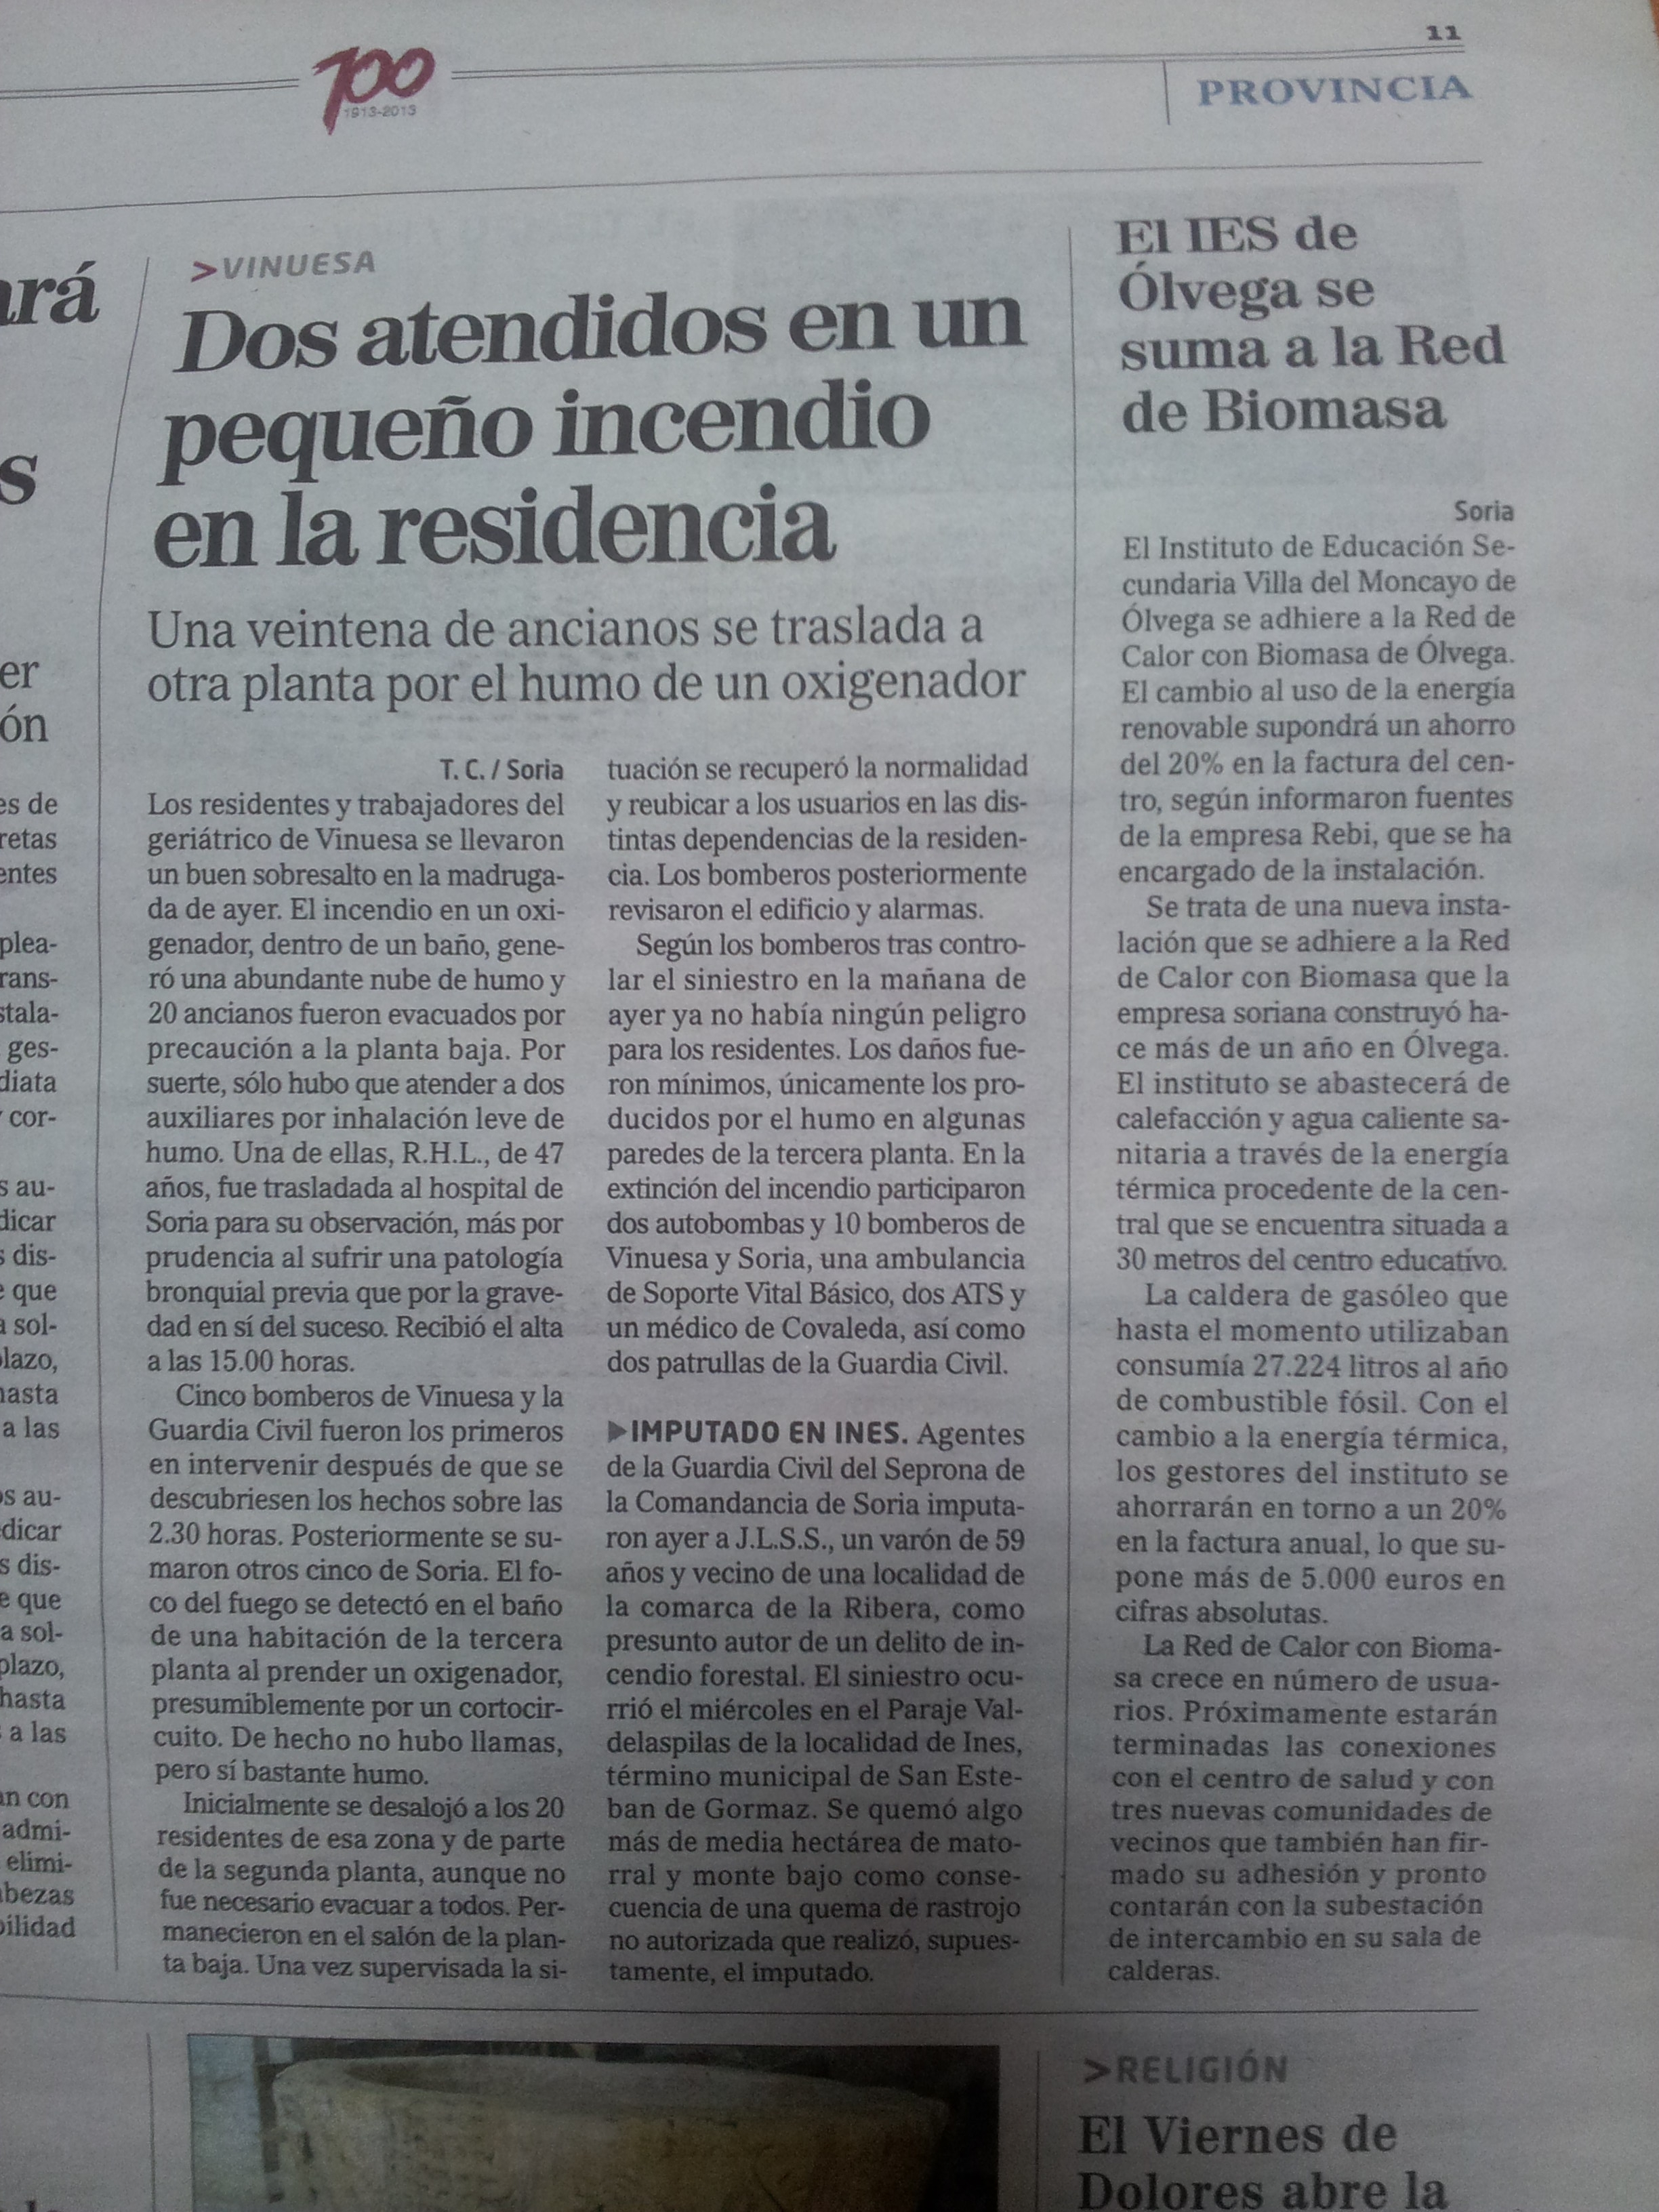 Noticia Diario de Soria, 11 de abril de 2014.